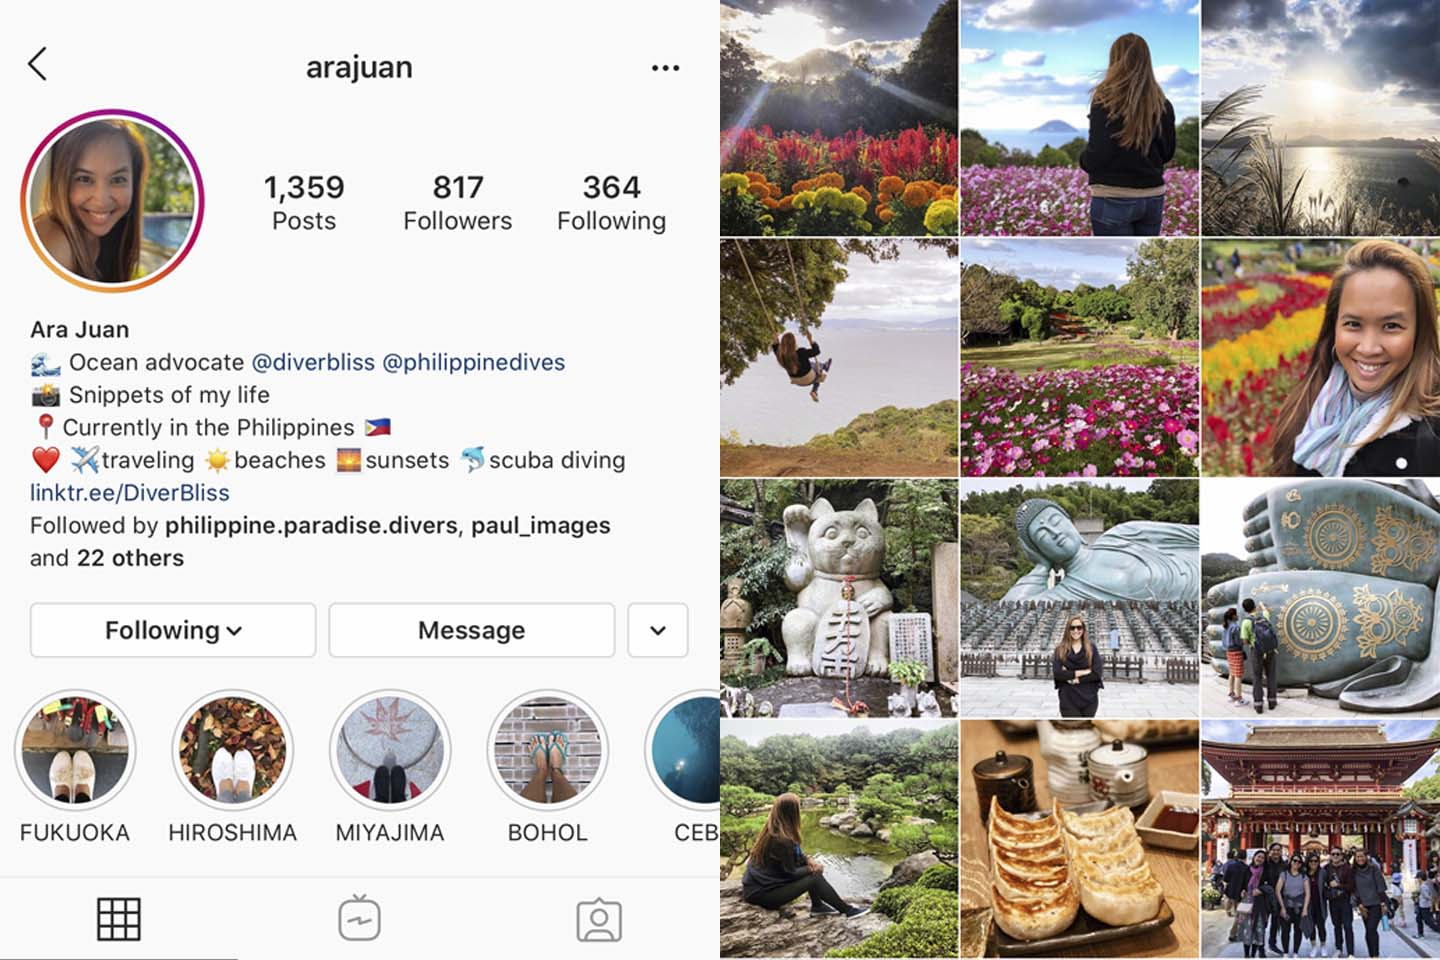 @arajuan instagram account focuses on personal life geared towards sharing content for family and friends